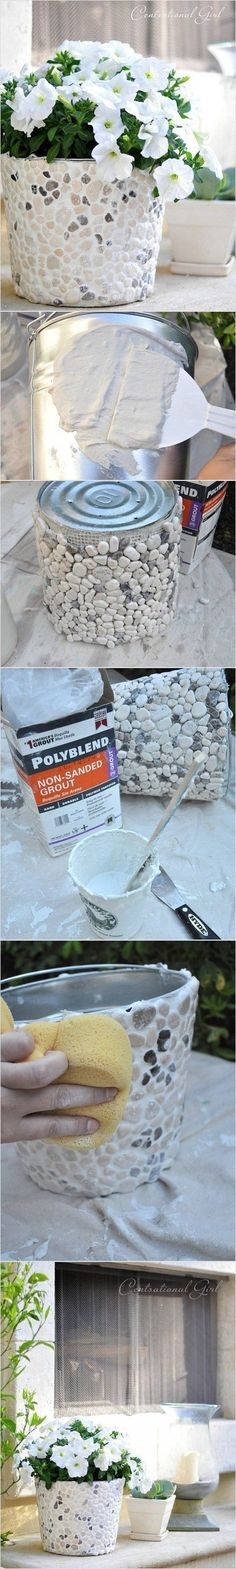 DIY pebble flower pots over tin cans